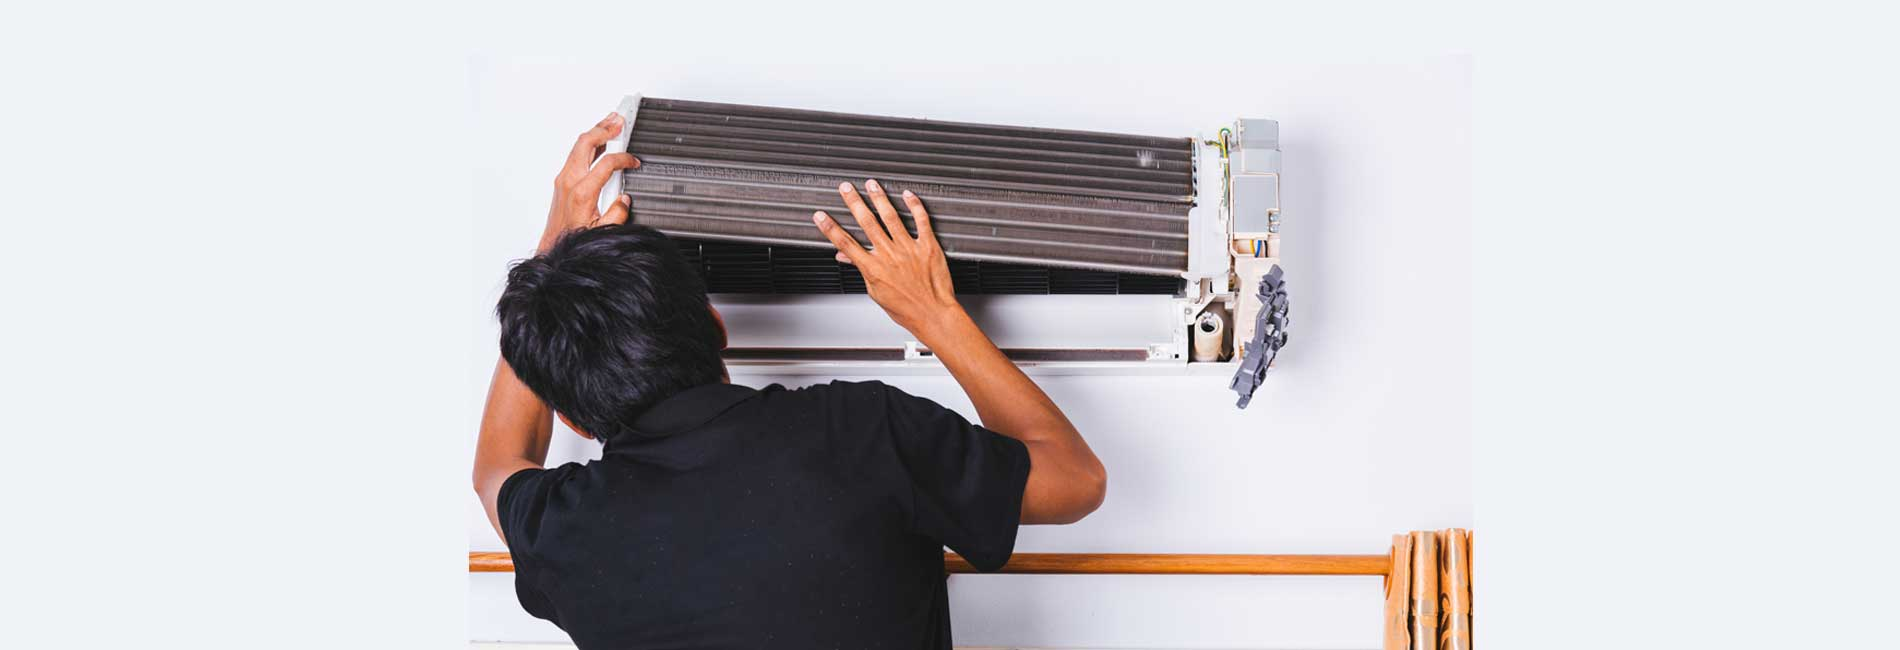 LG AC Repair in Greams road